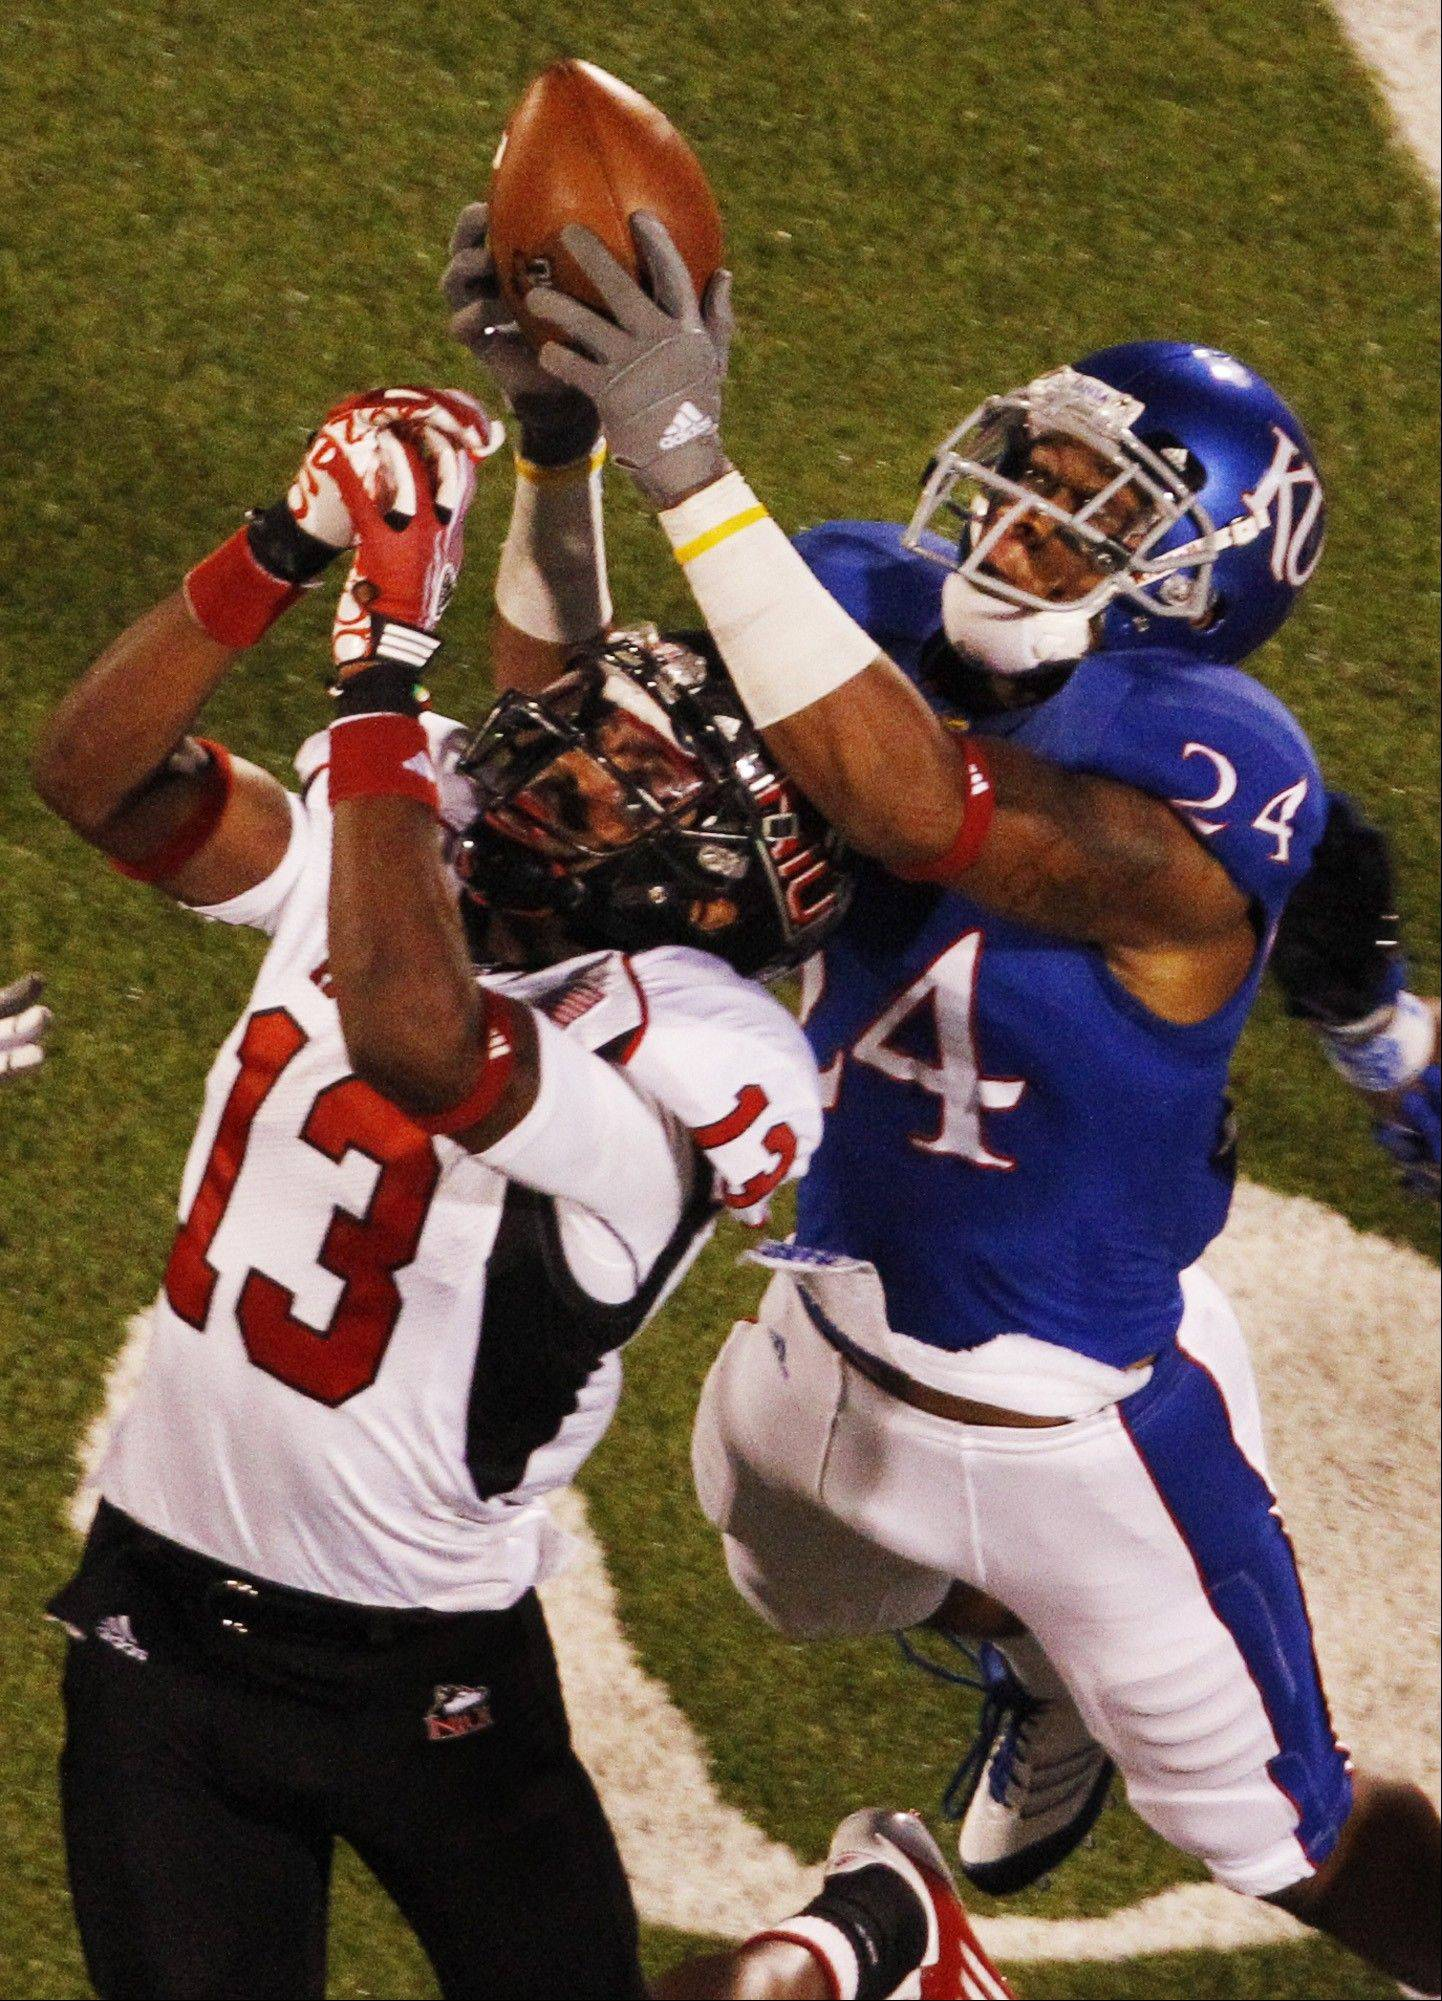 Kansas safety Bradley McDougald knocks the ball away from Northern Illinois wide receiver Anthony Johnson on the last play of the game Saturday night in Lawrence. Kansas defeated Northern Illinois 45-42.